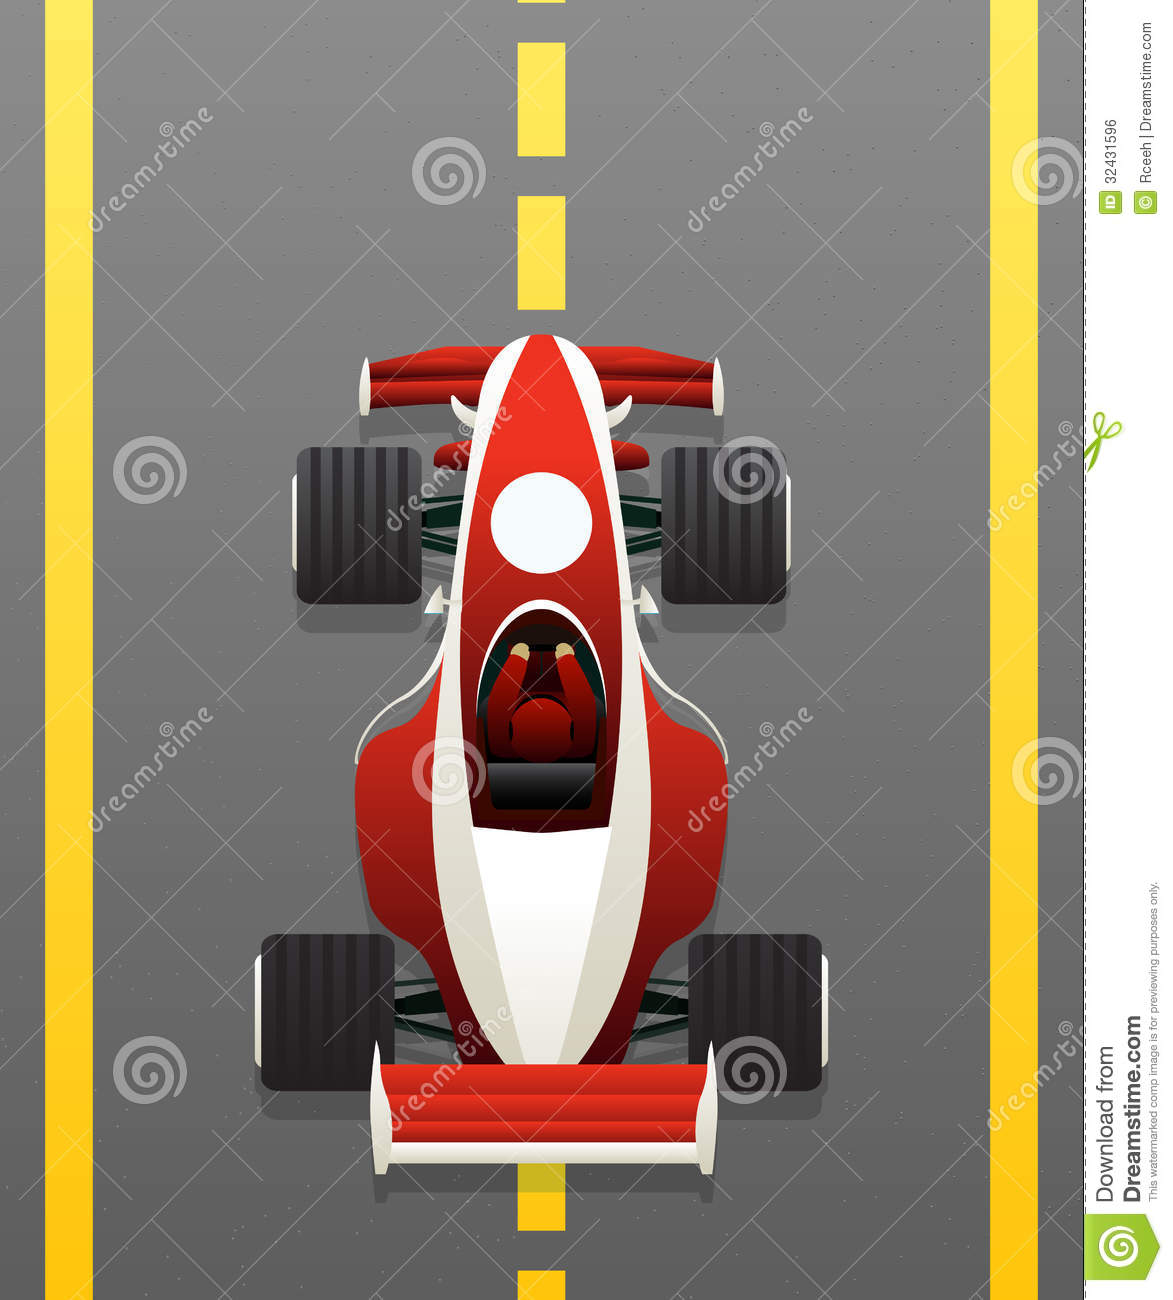 toy racecar with Royalty Free Stock Image Red Racing Car Track Cartoon Icon Games Applications Image32431596 on Coloring Pages Race Cars further 221933849346 likewise 790263 also Racecar Cupcakes in addition Watch.